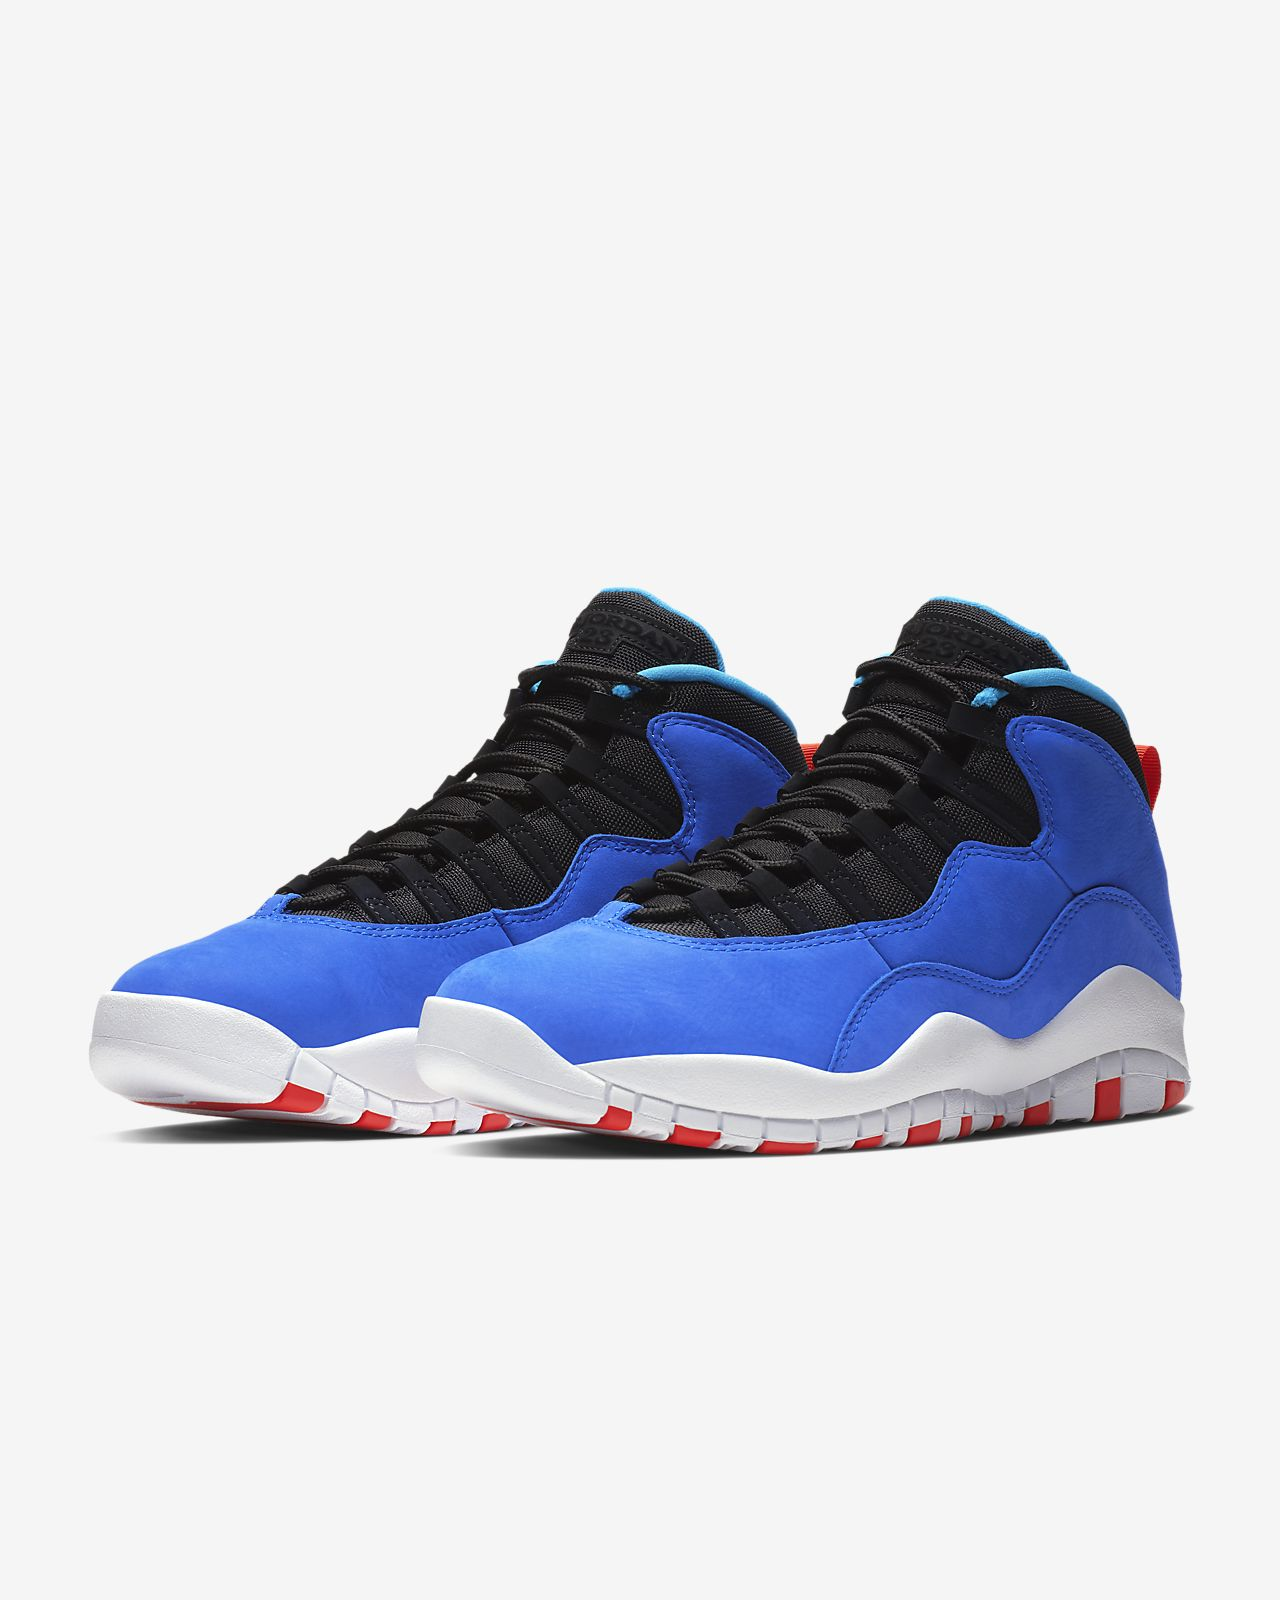 9eccdc46f5246e Air Jordan 10 Retro Men s Shoe. Nike.com GB